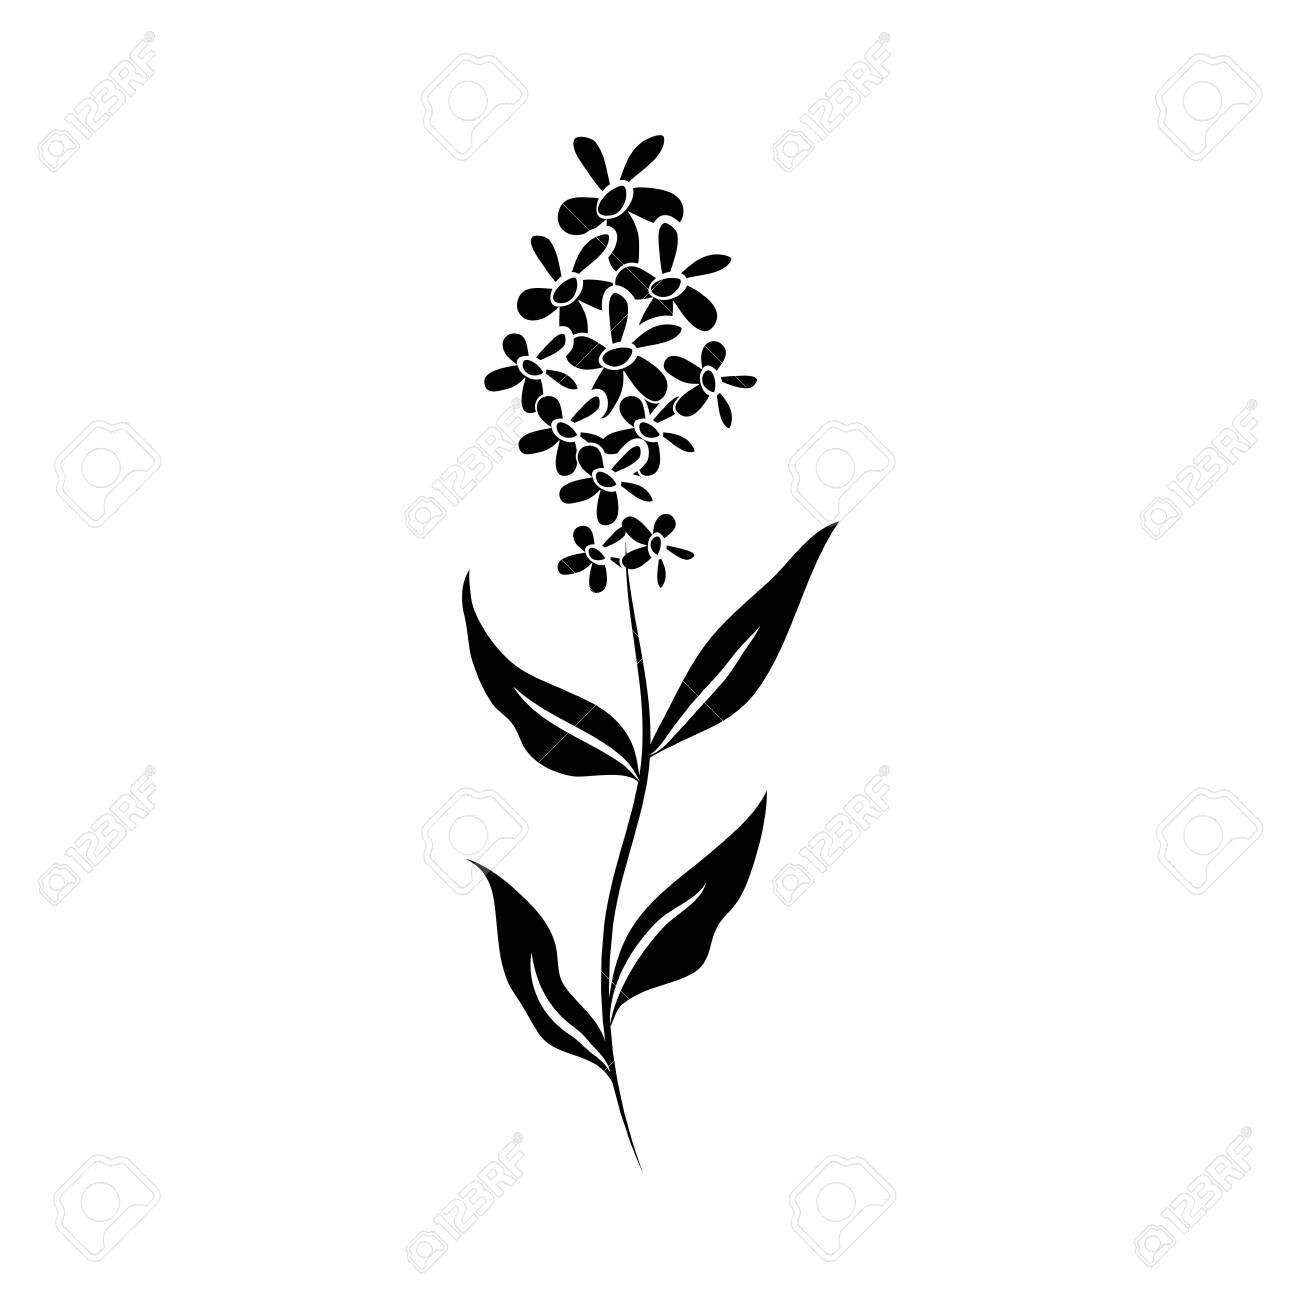 Minimalist Tattoo Flower Stem Petals Silhouette Art Herb And Royalty Free Cliparts Vectors And Stock Illustration Image 154414016